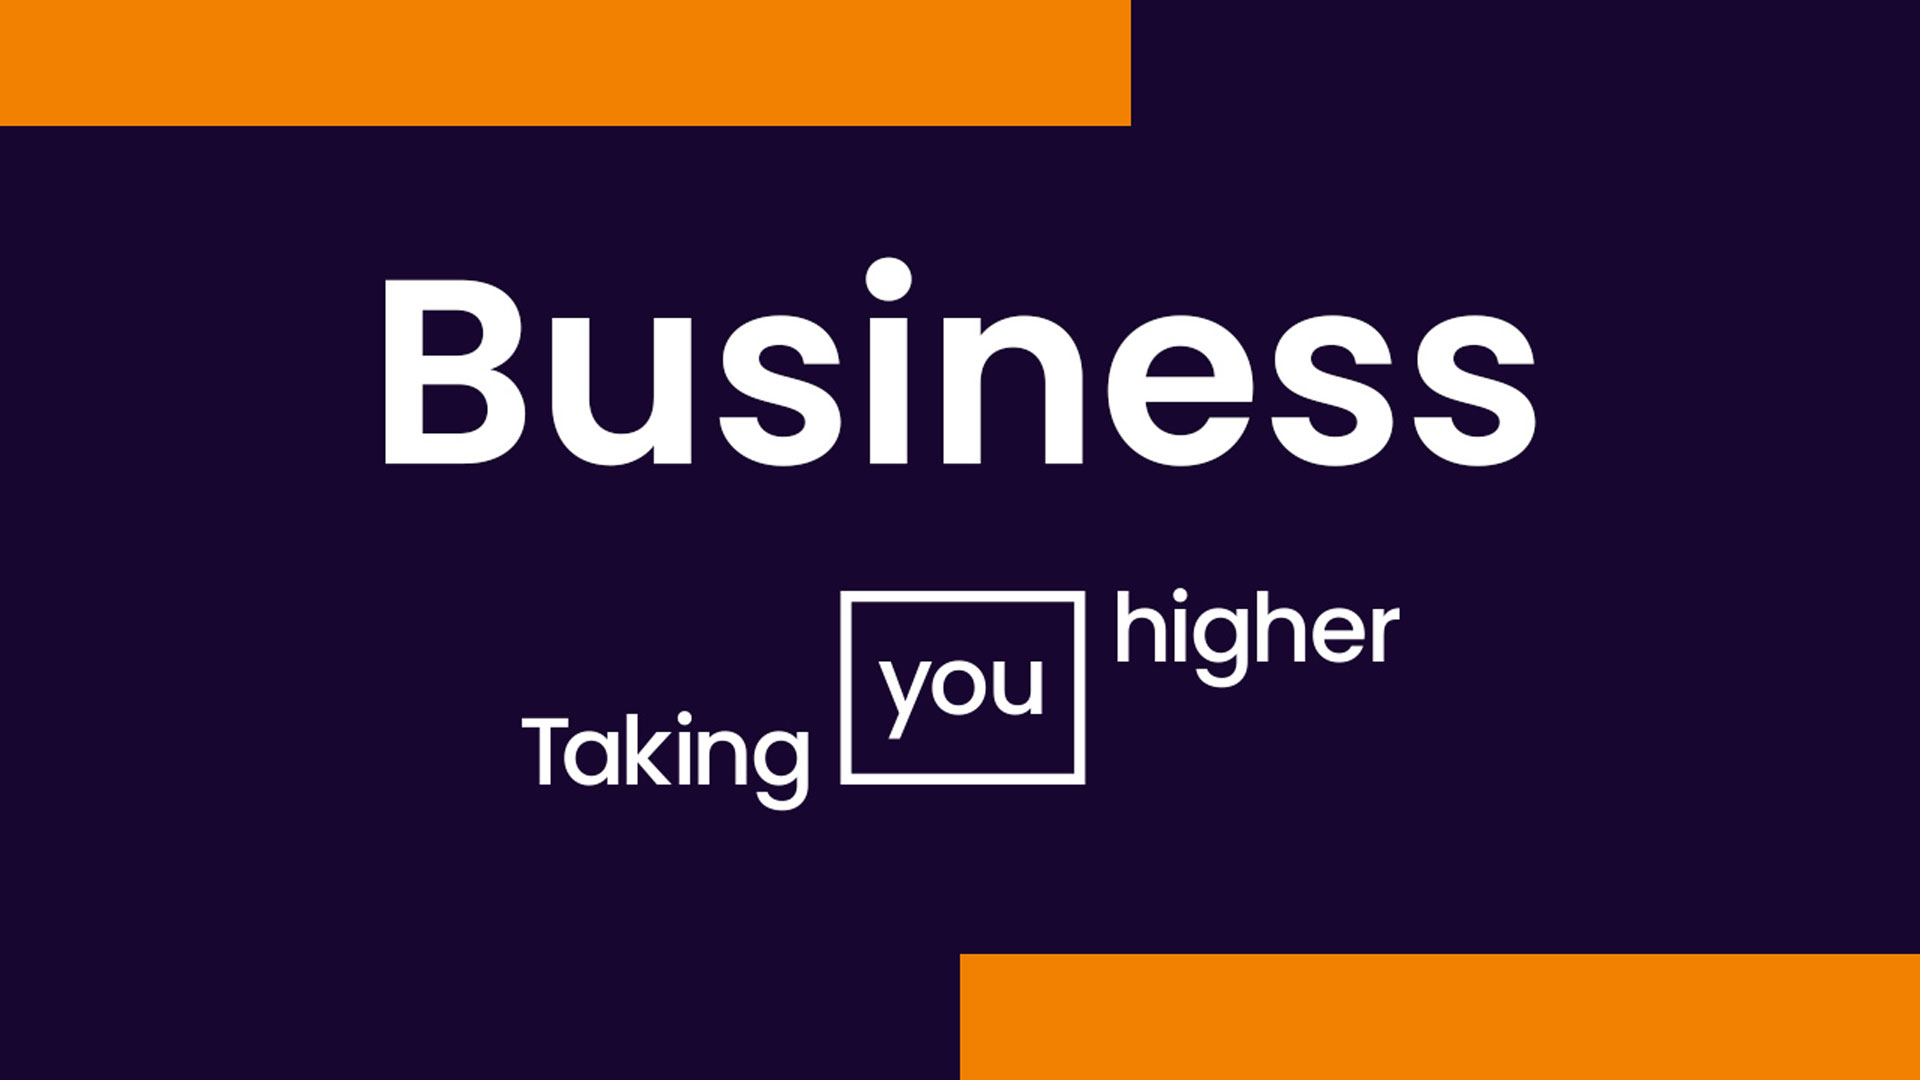 Middlesbrough College Business Courses